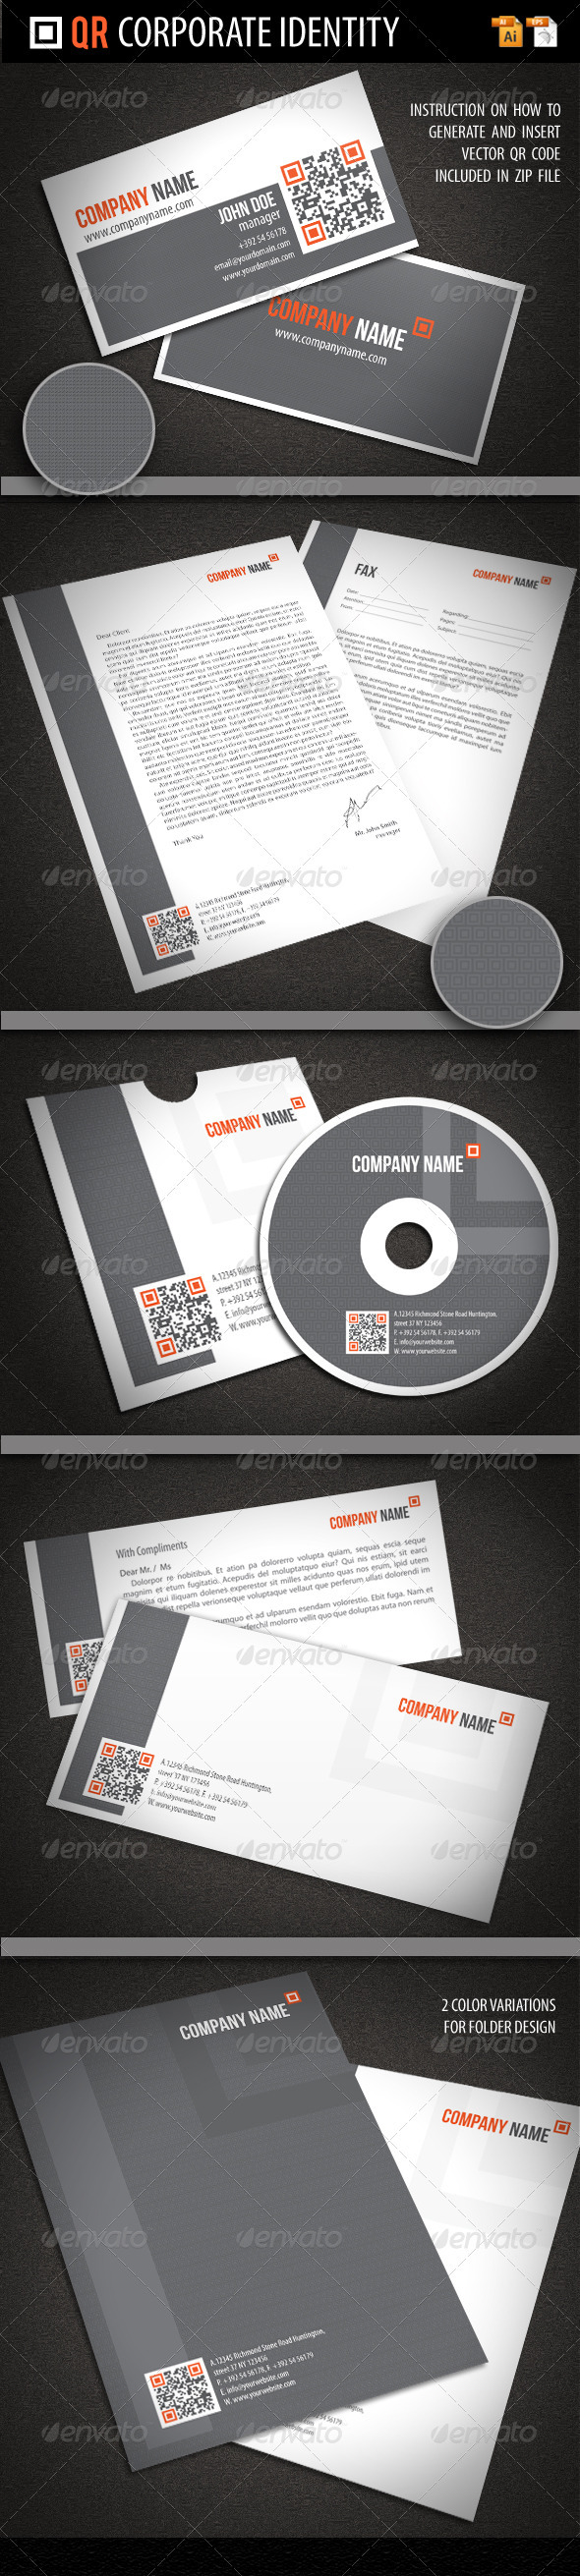 QR Corporate Identity - Stationery Print Templates